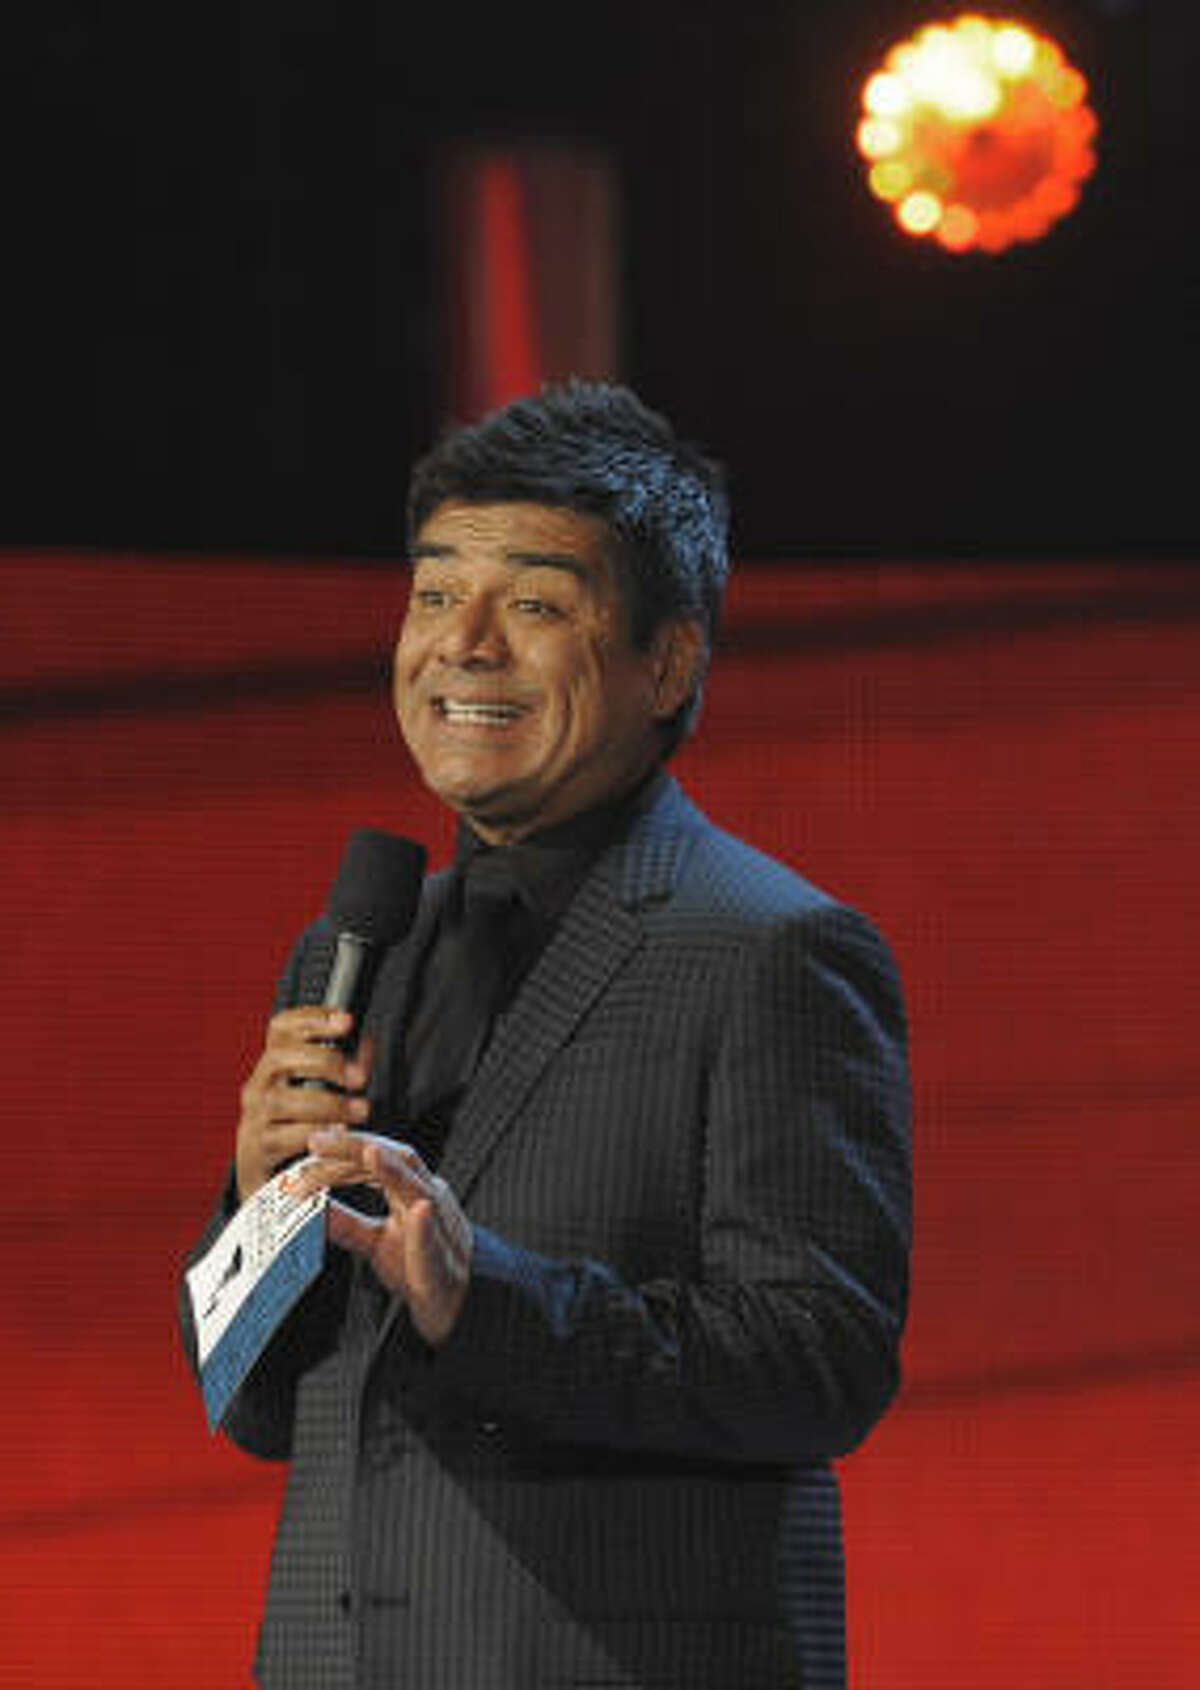 Comedian George Lopez was on hand to MC the show.